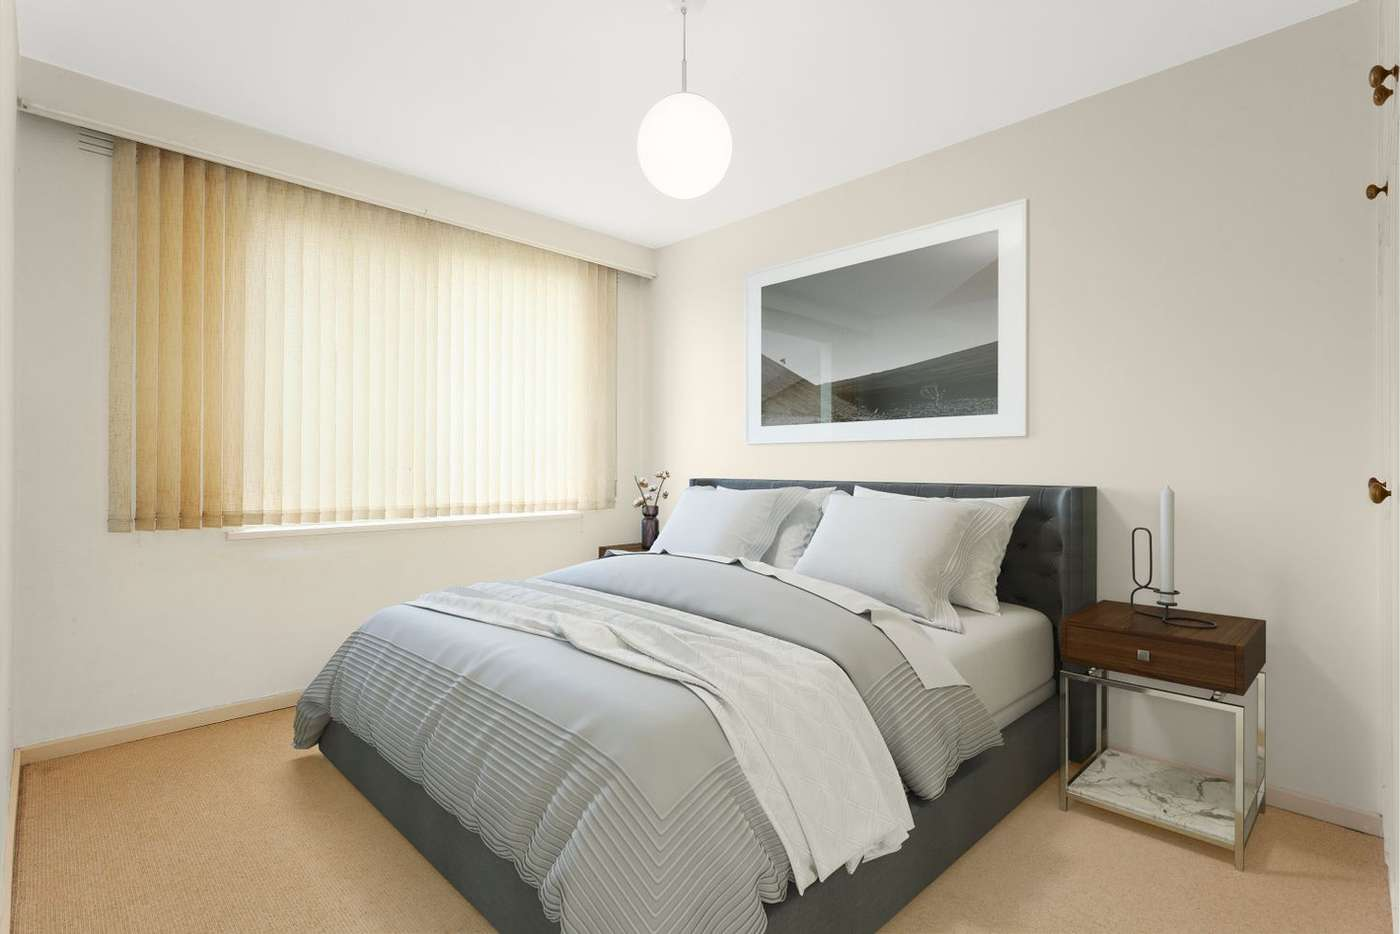 Sixth view of Homely apartment listing, 2/37-39 Fisher Street, Malvern East VIC 3145